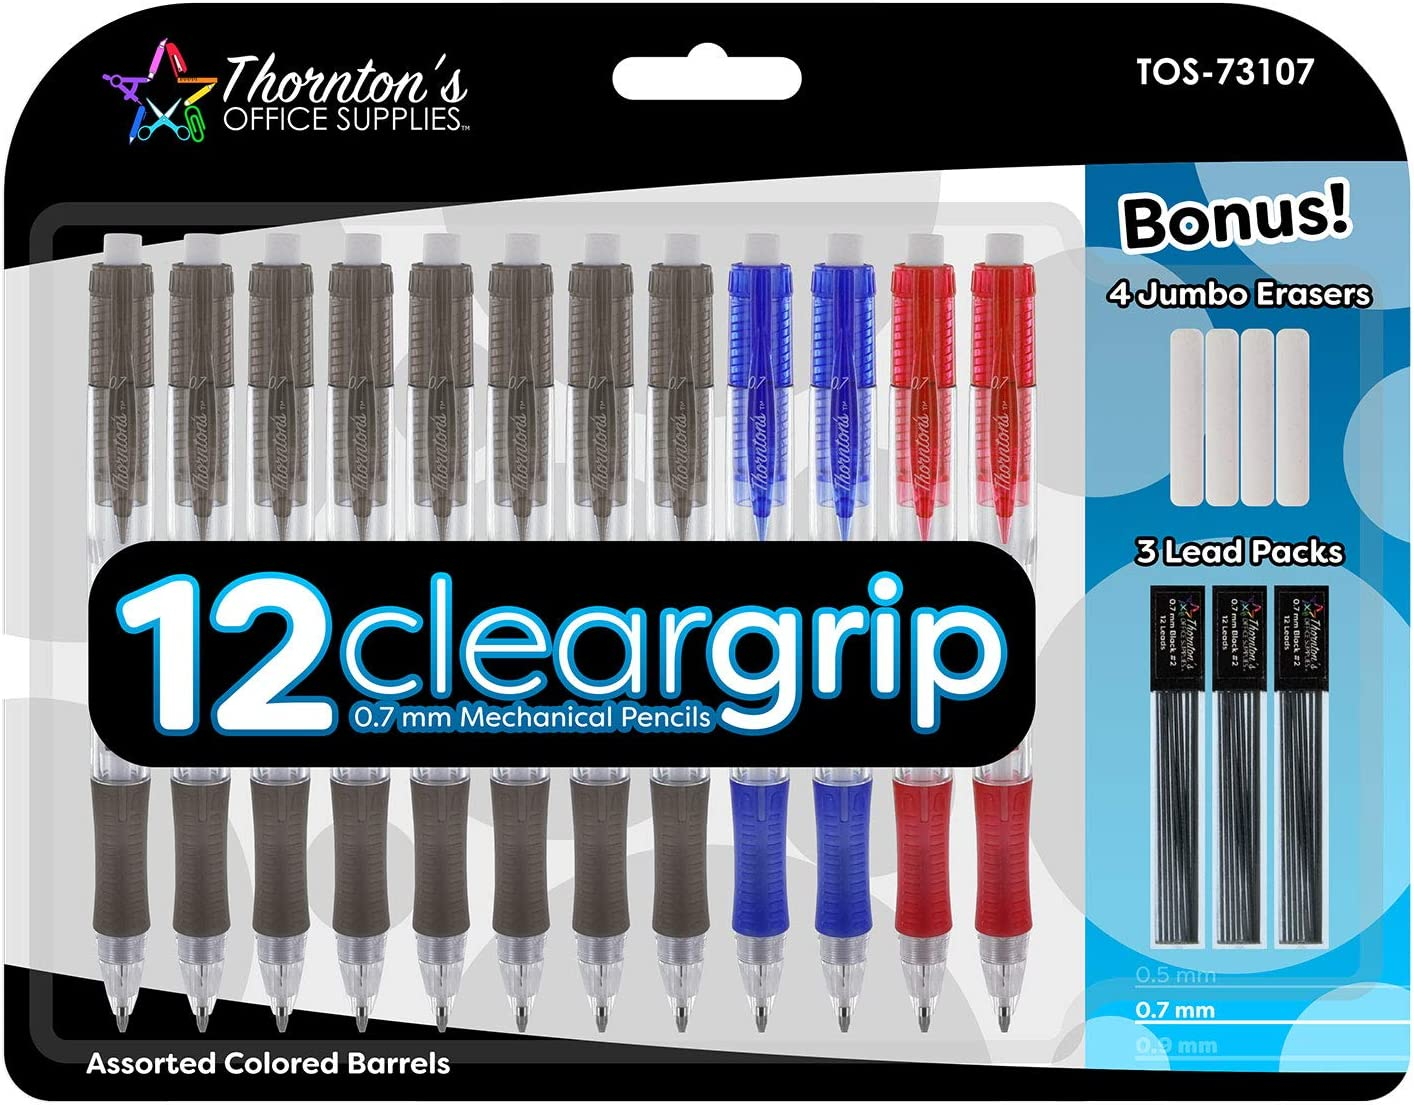 Thornton's Office Supplies ClearGrip Mechanical Pencil Starter Set 0.7mm Assorted Colors Pack of 12 Automatic Drafting Lead Pencil for Fine Drawing & Handwriting